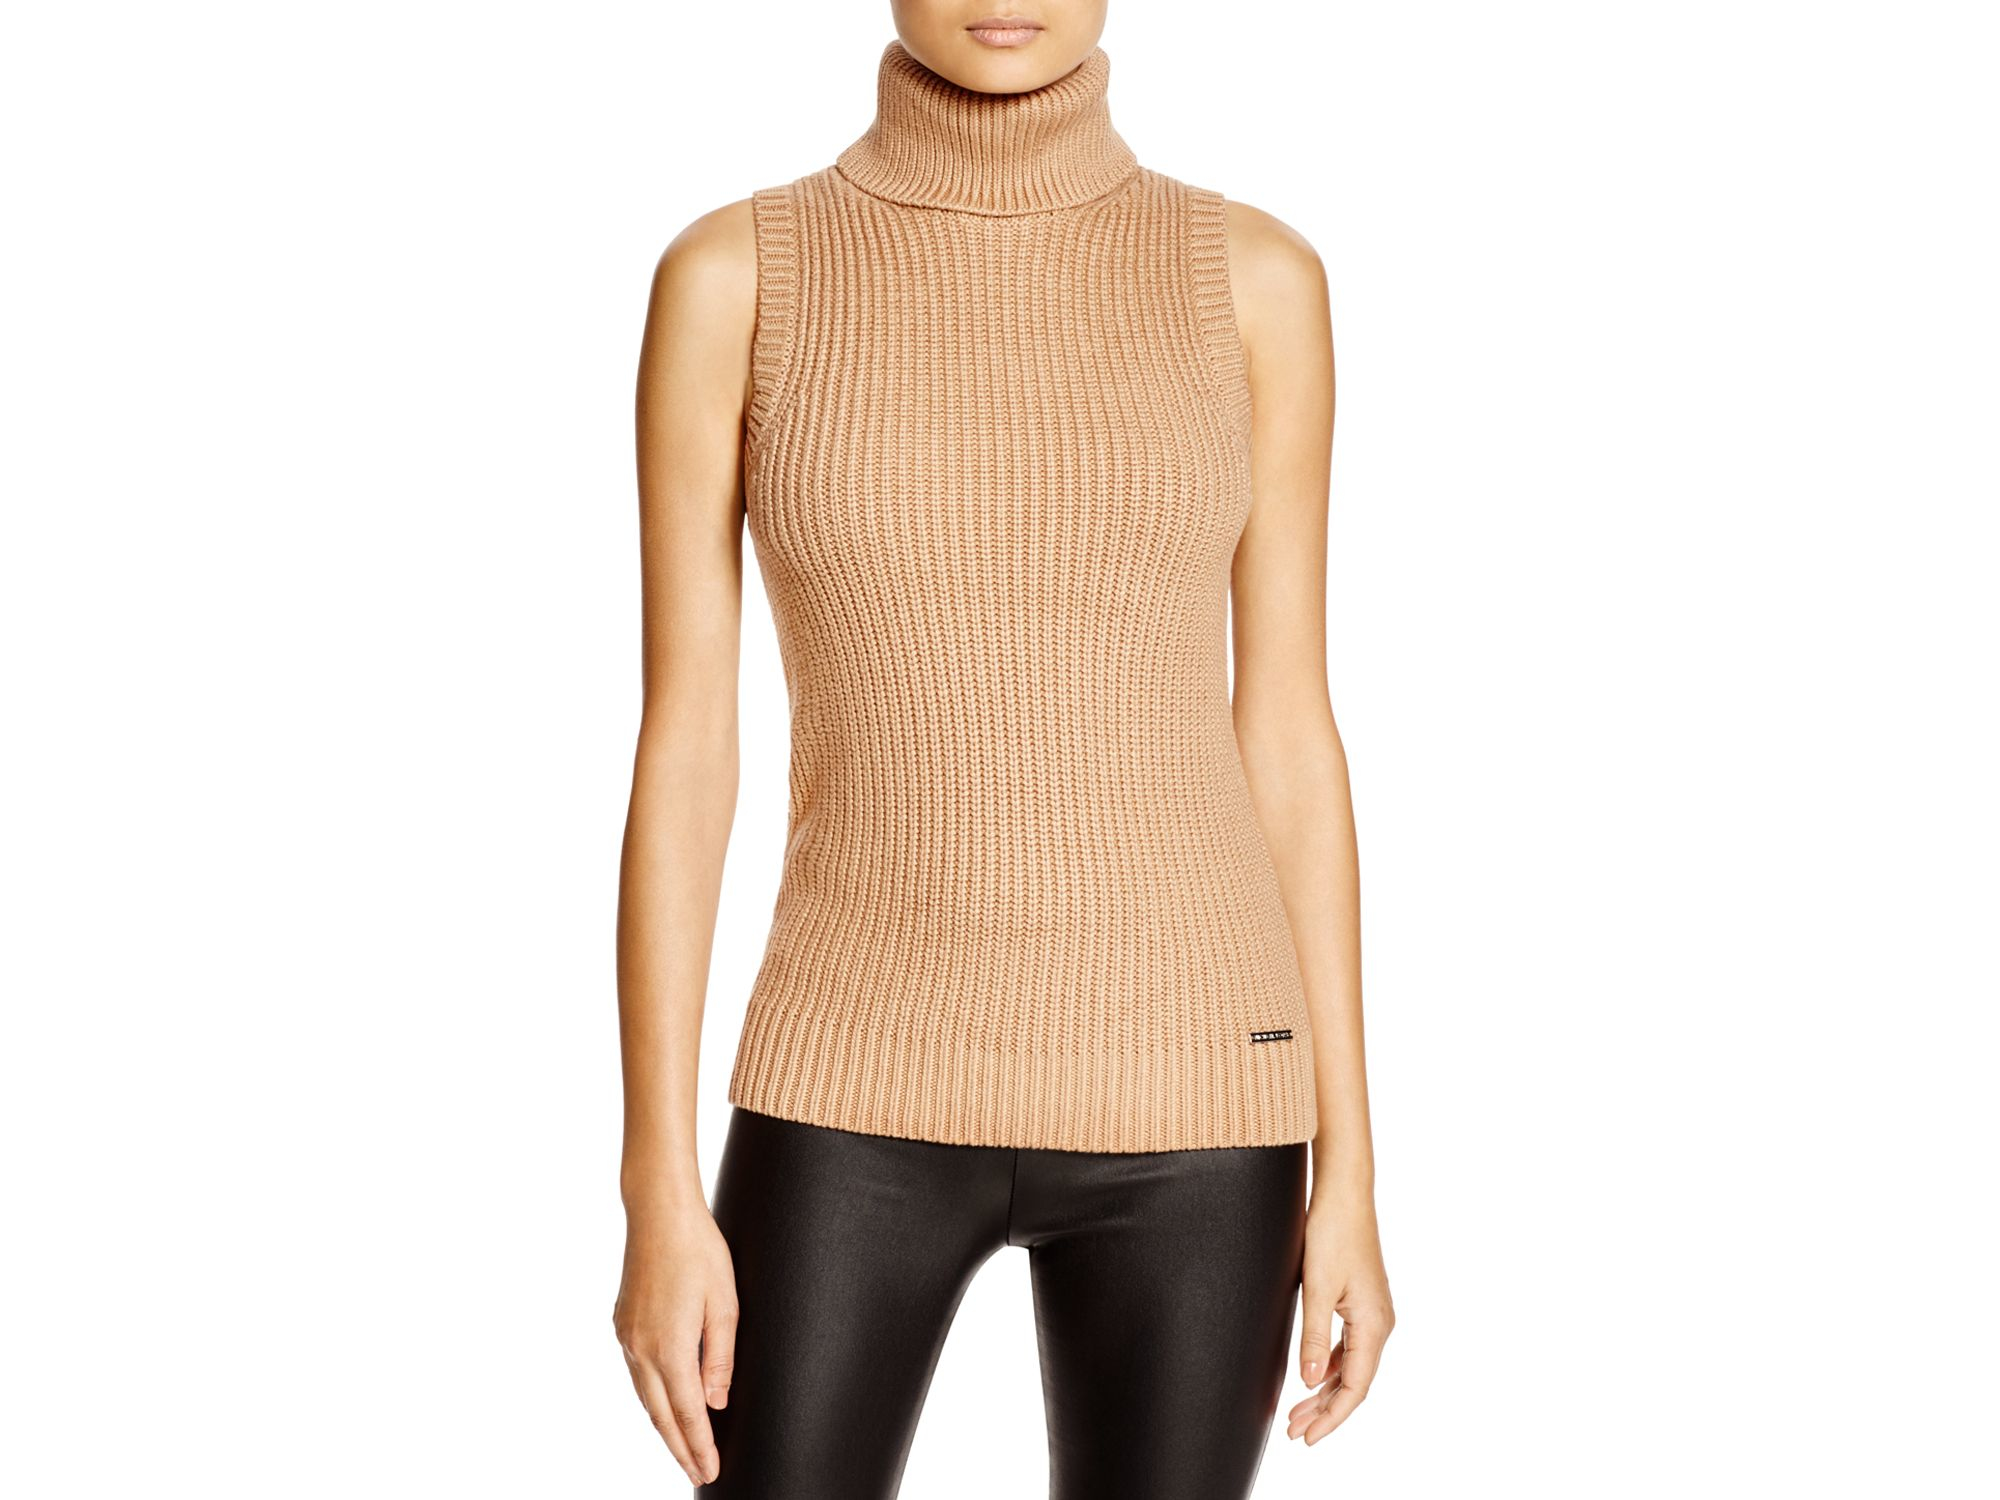 Michael michael kors Sleeveless Turtleneck Sweater in Natural | Lyst